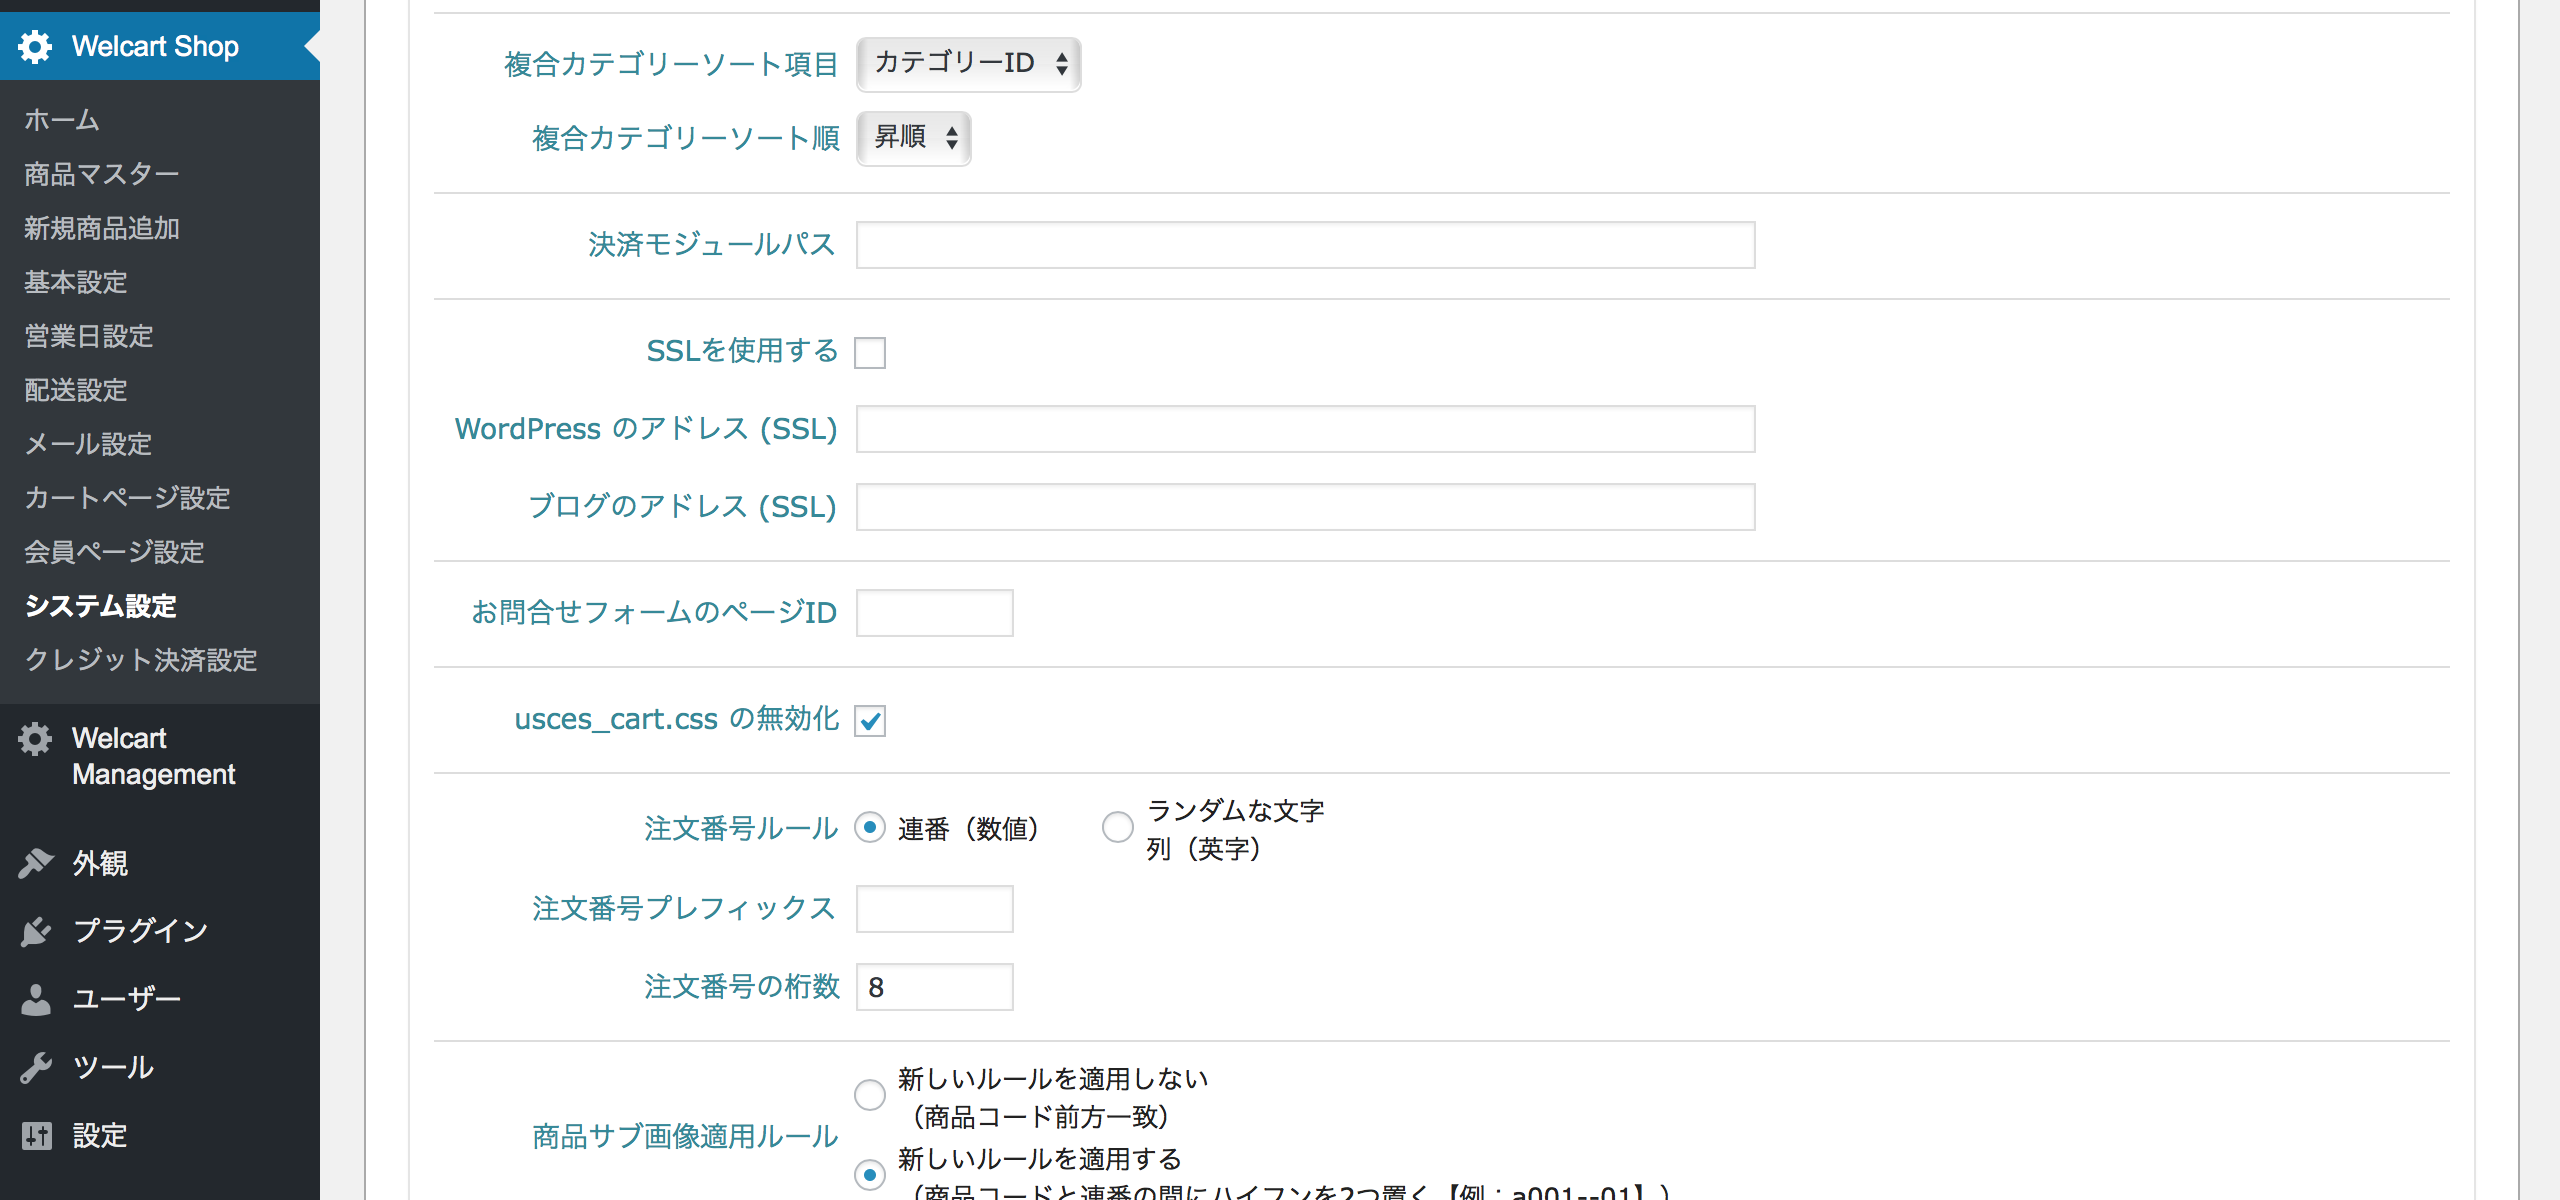 Welcart - usces_cart.cssの無効化